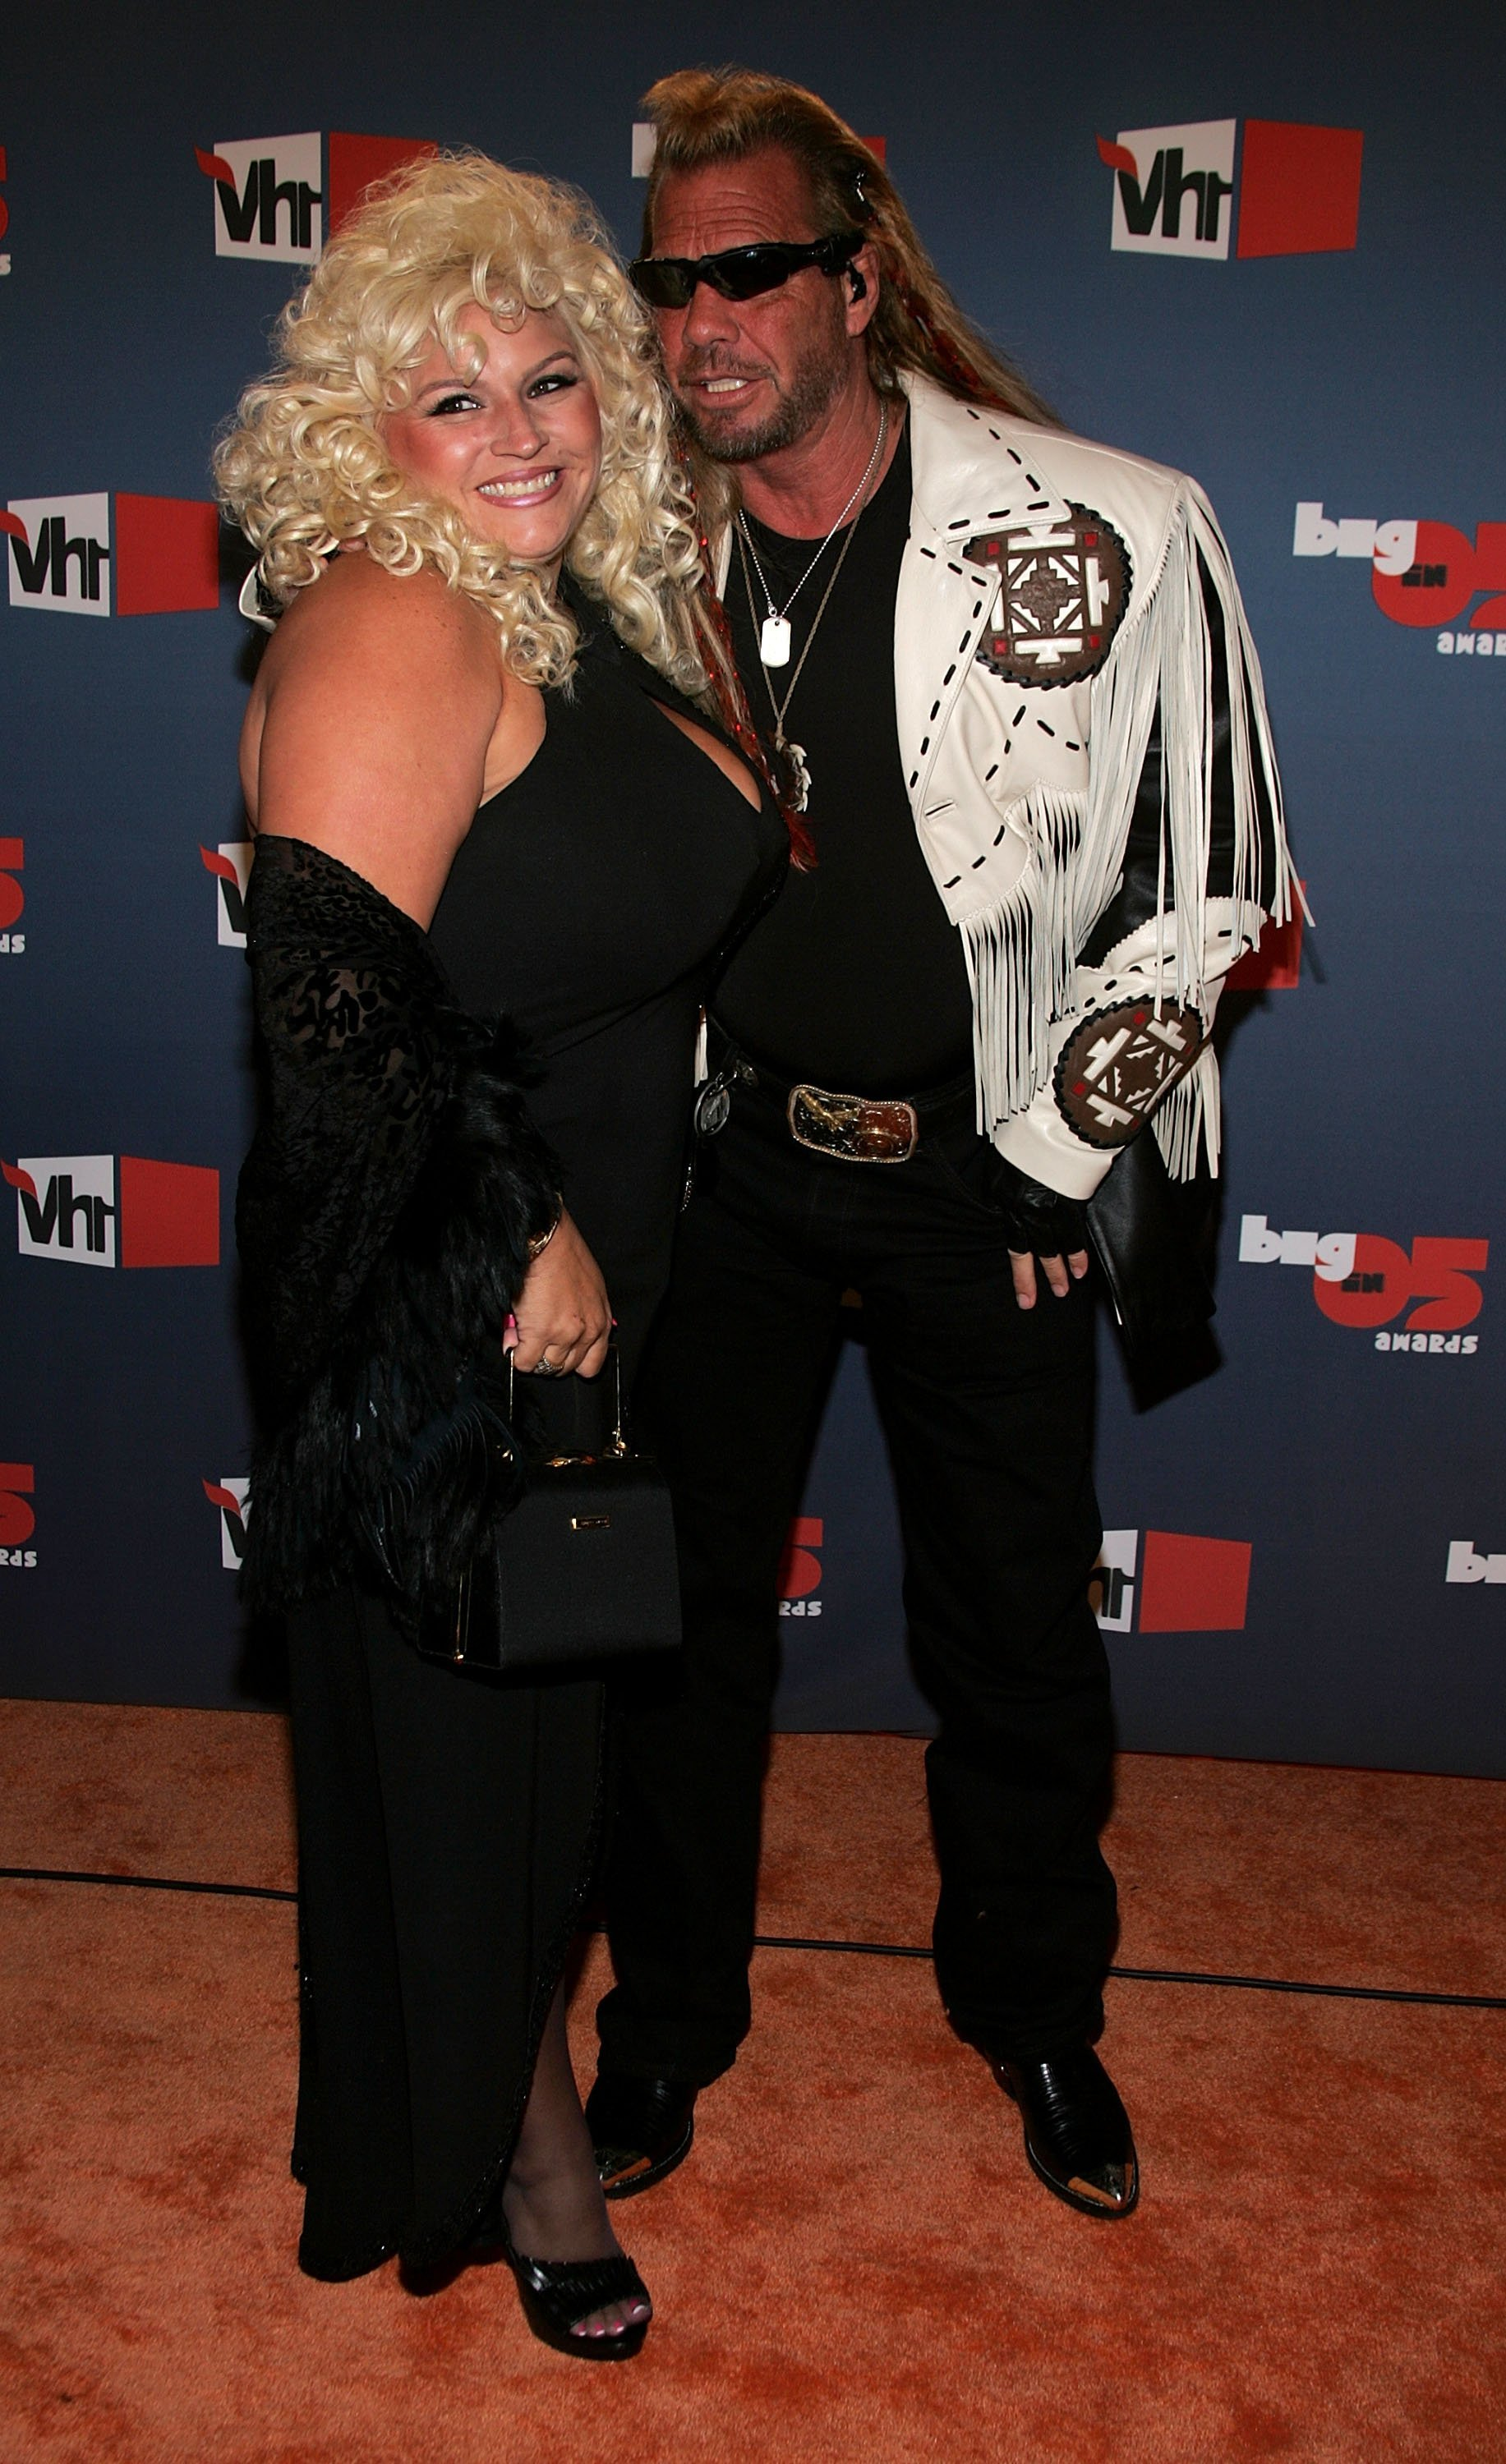 """Duane """"Dog"""" Chapman and Beth Chapman at the VH1 Big In '05 Awards on December 3, 2005 